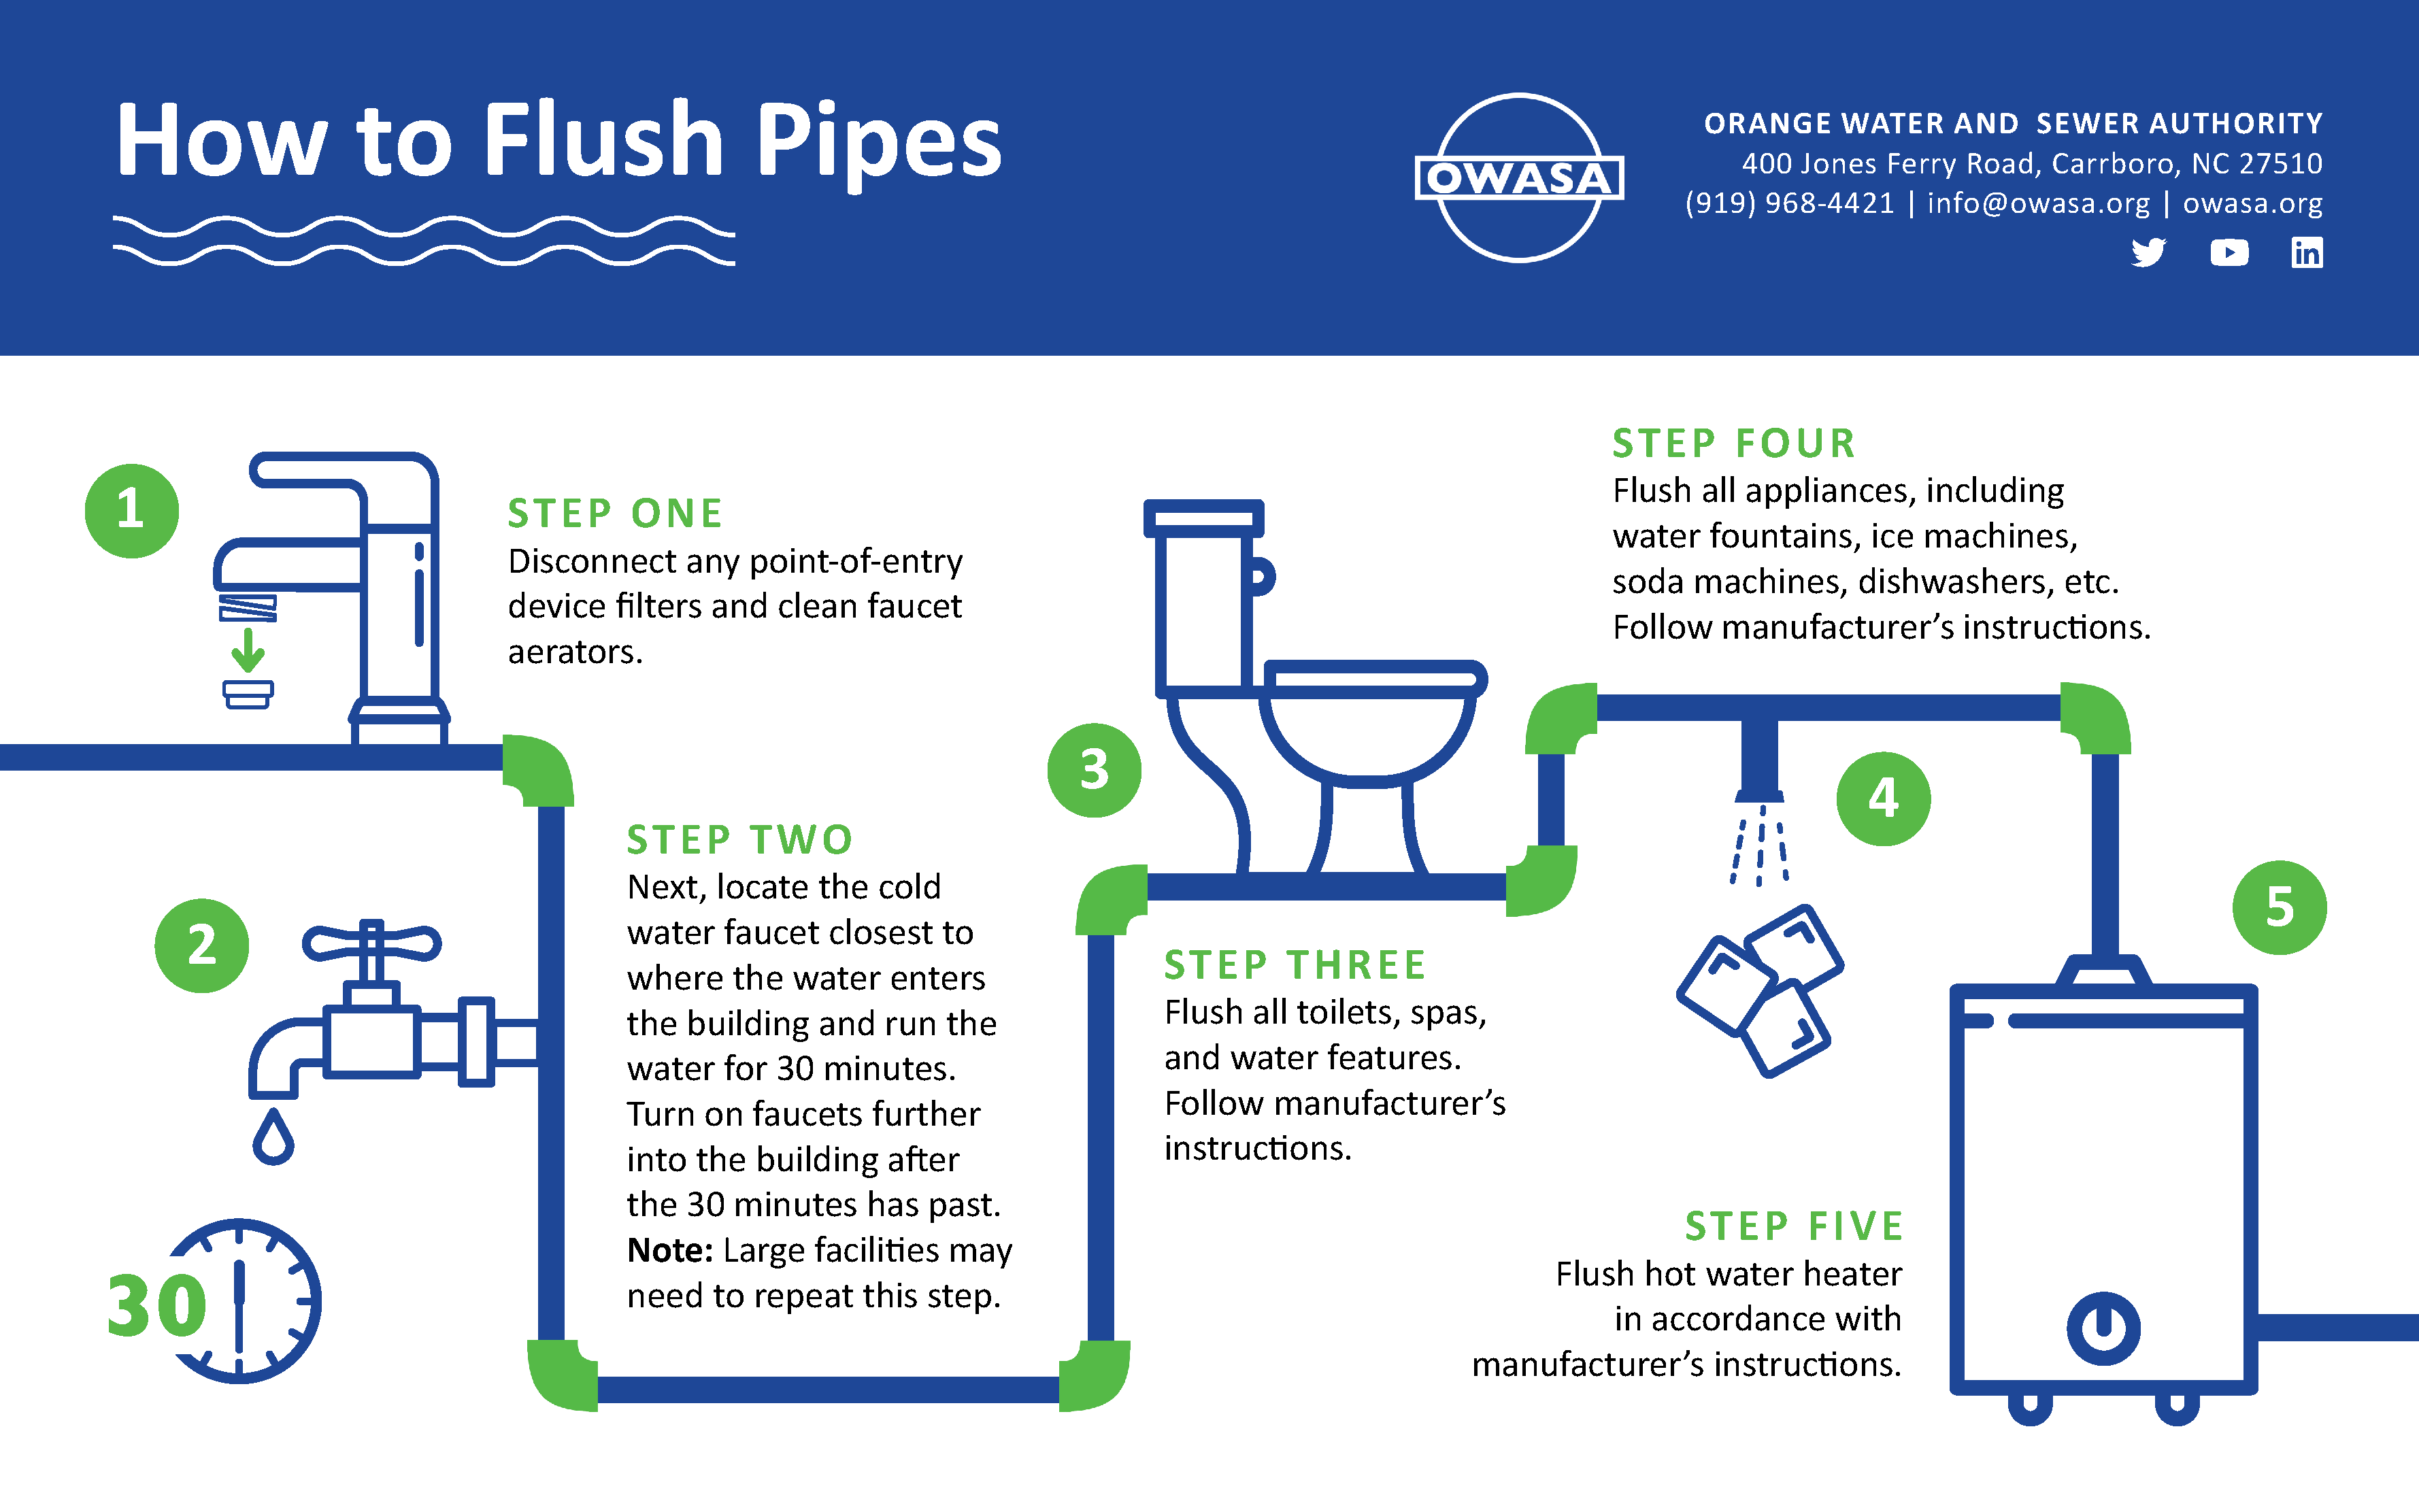 Flushing Guidance Infographic courtesy of OWASA